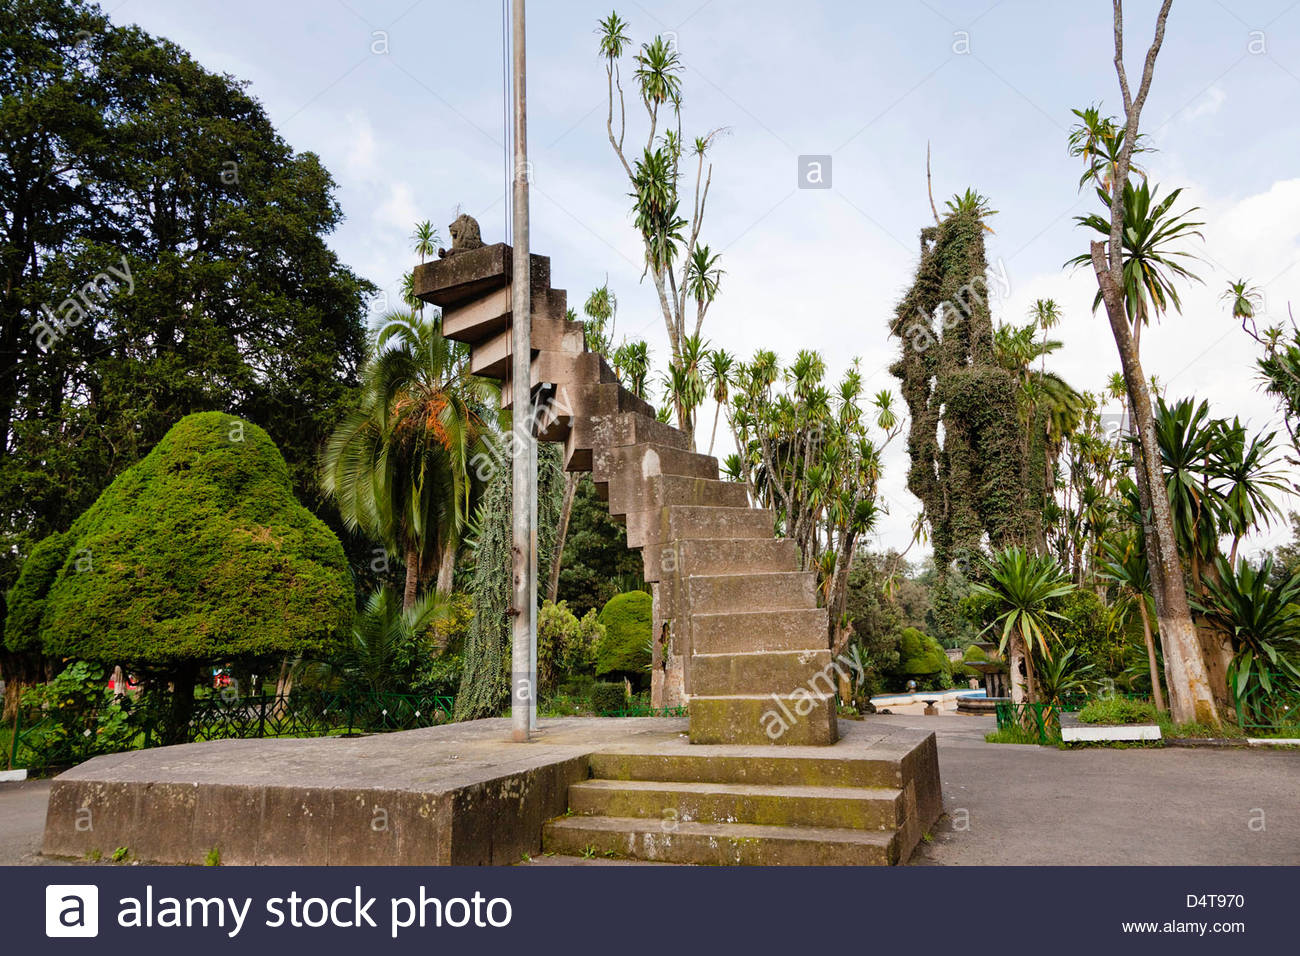 Addis Ababa Park Addis Ababa, Park of the University in Addis Ababa, Ethiopia Stock Photo ...